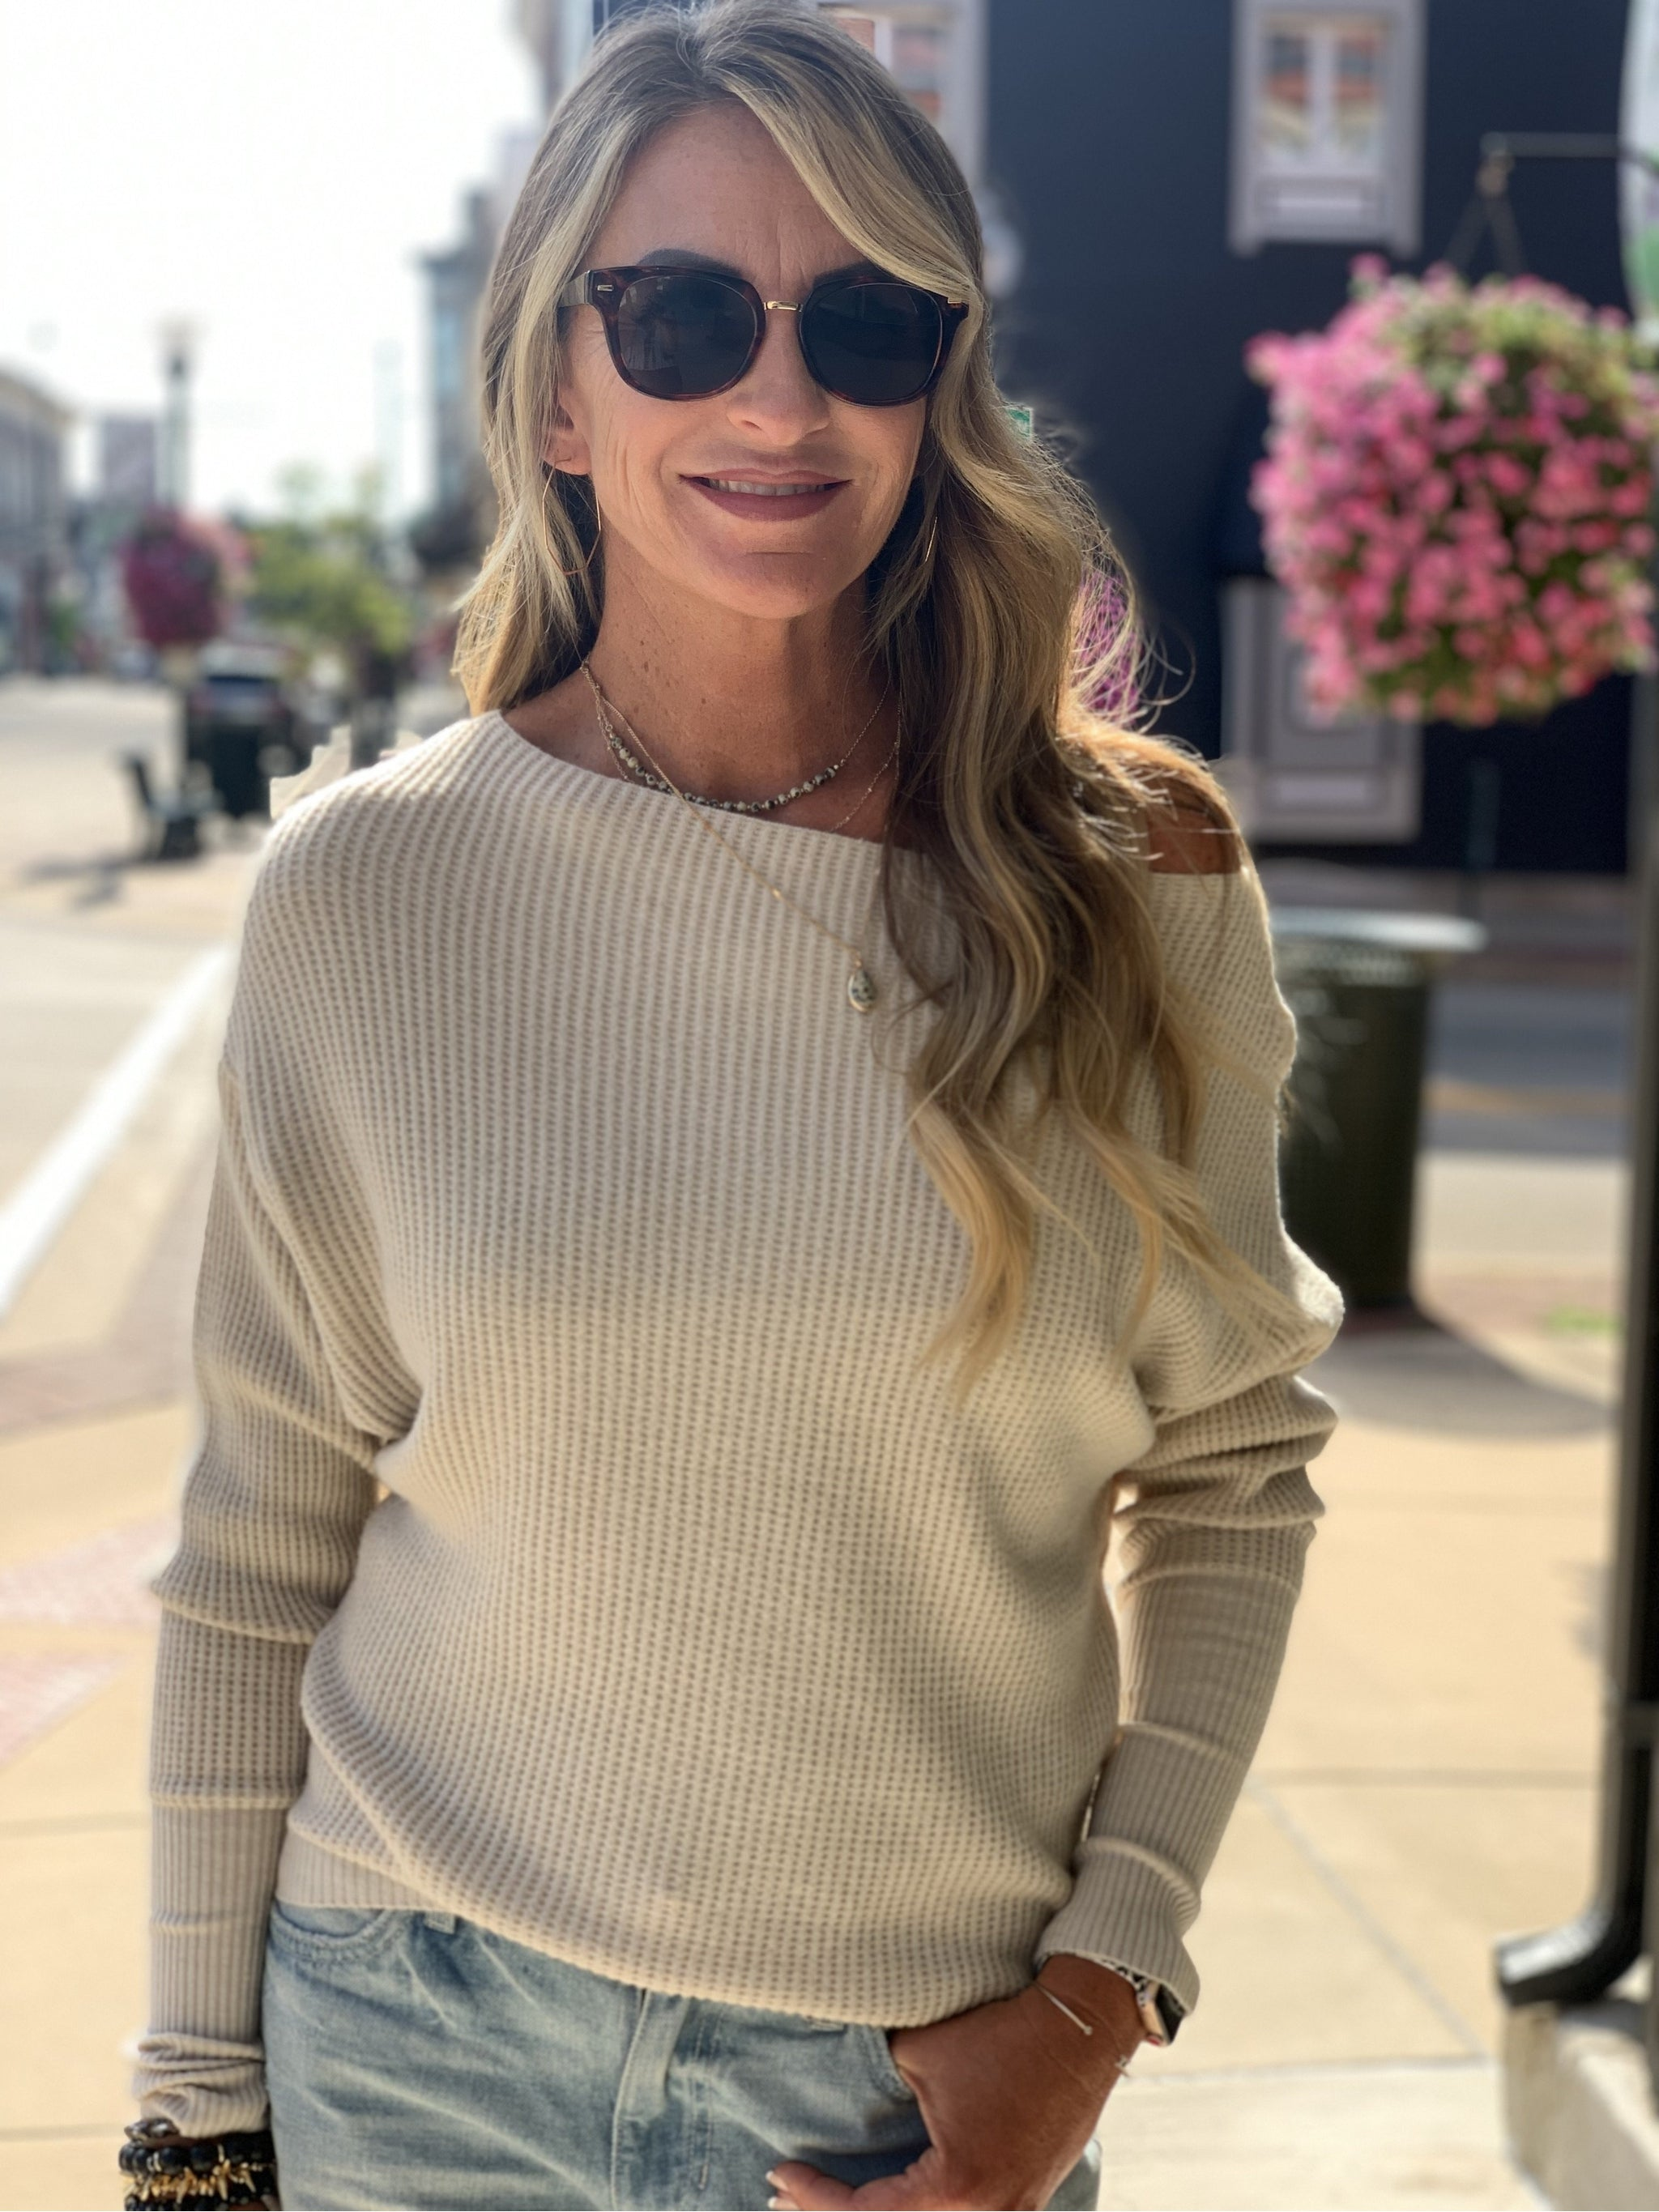 THE ERIKA DOLMAN SWEATER - 2 colors